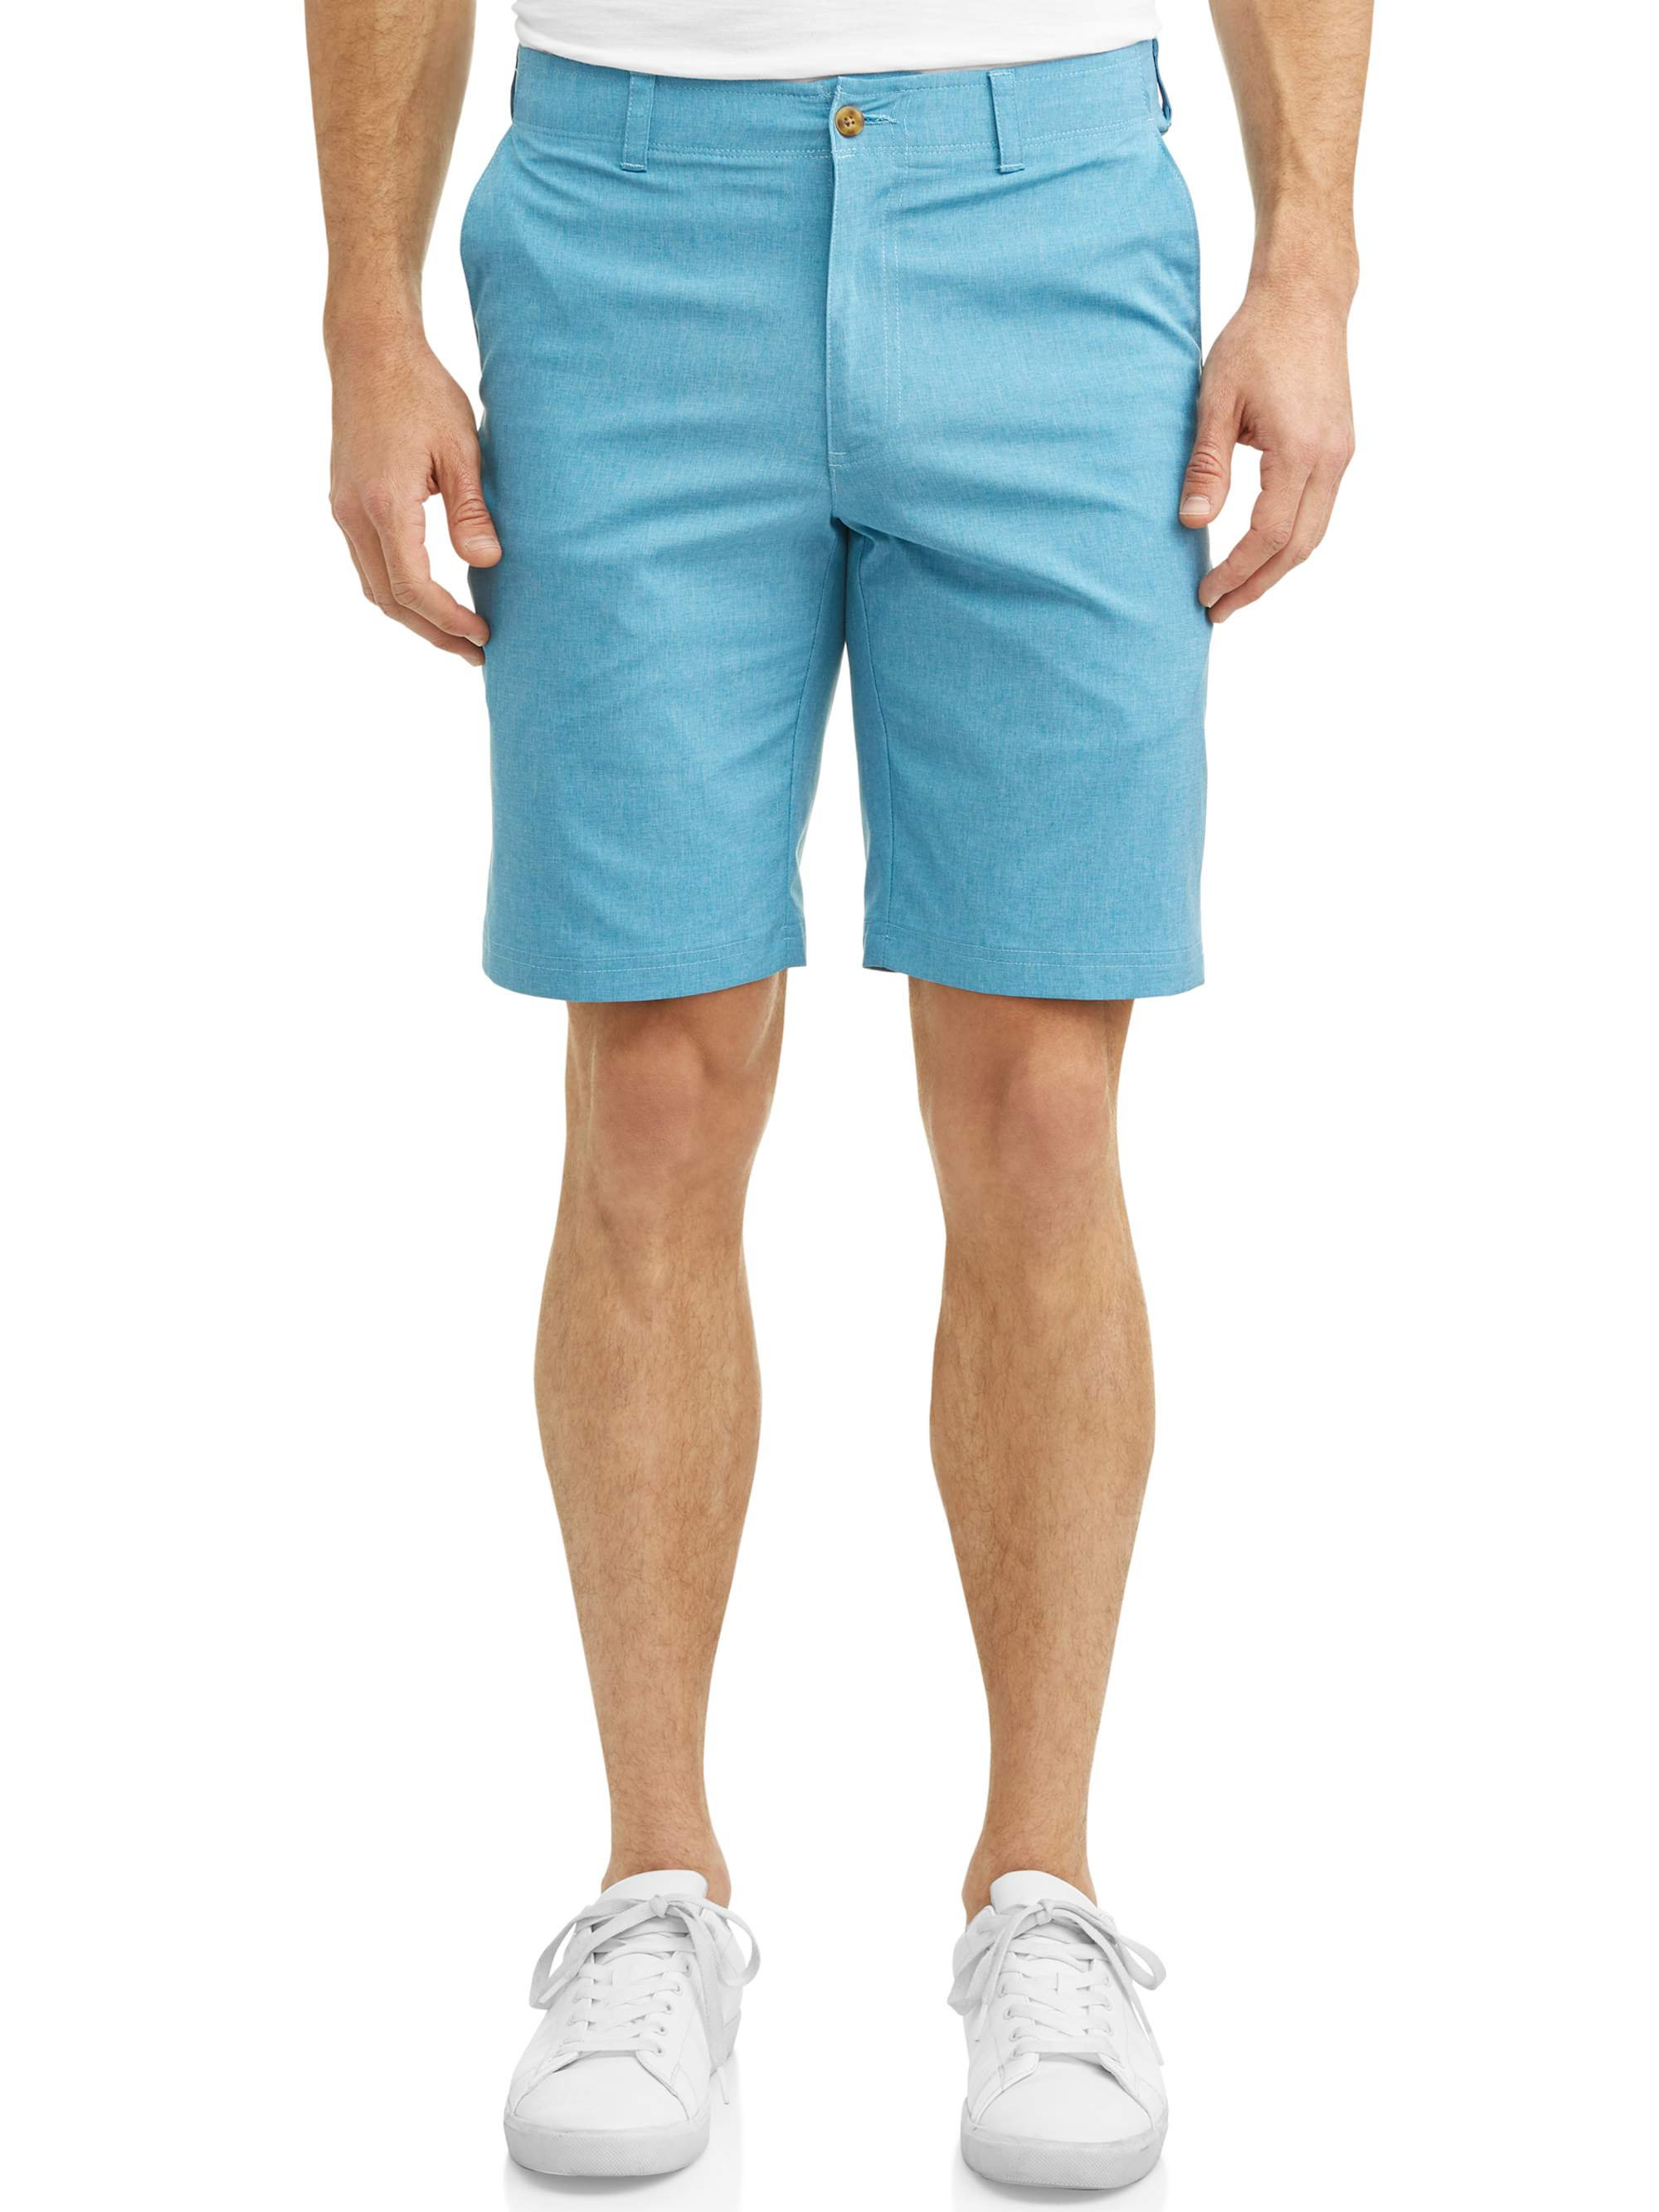 Big Men's Performance Heather Active Flex Waistband 4-Way Stretch Golf Short